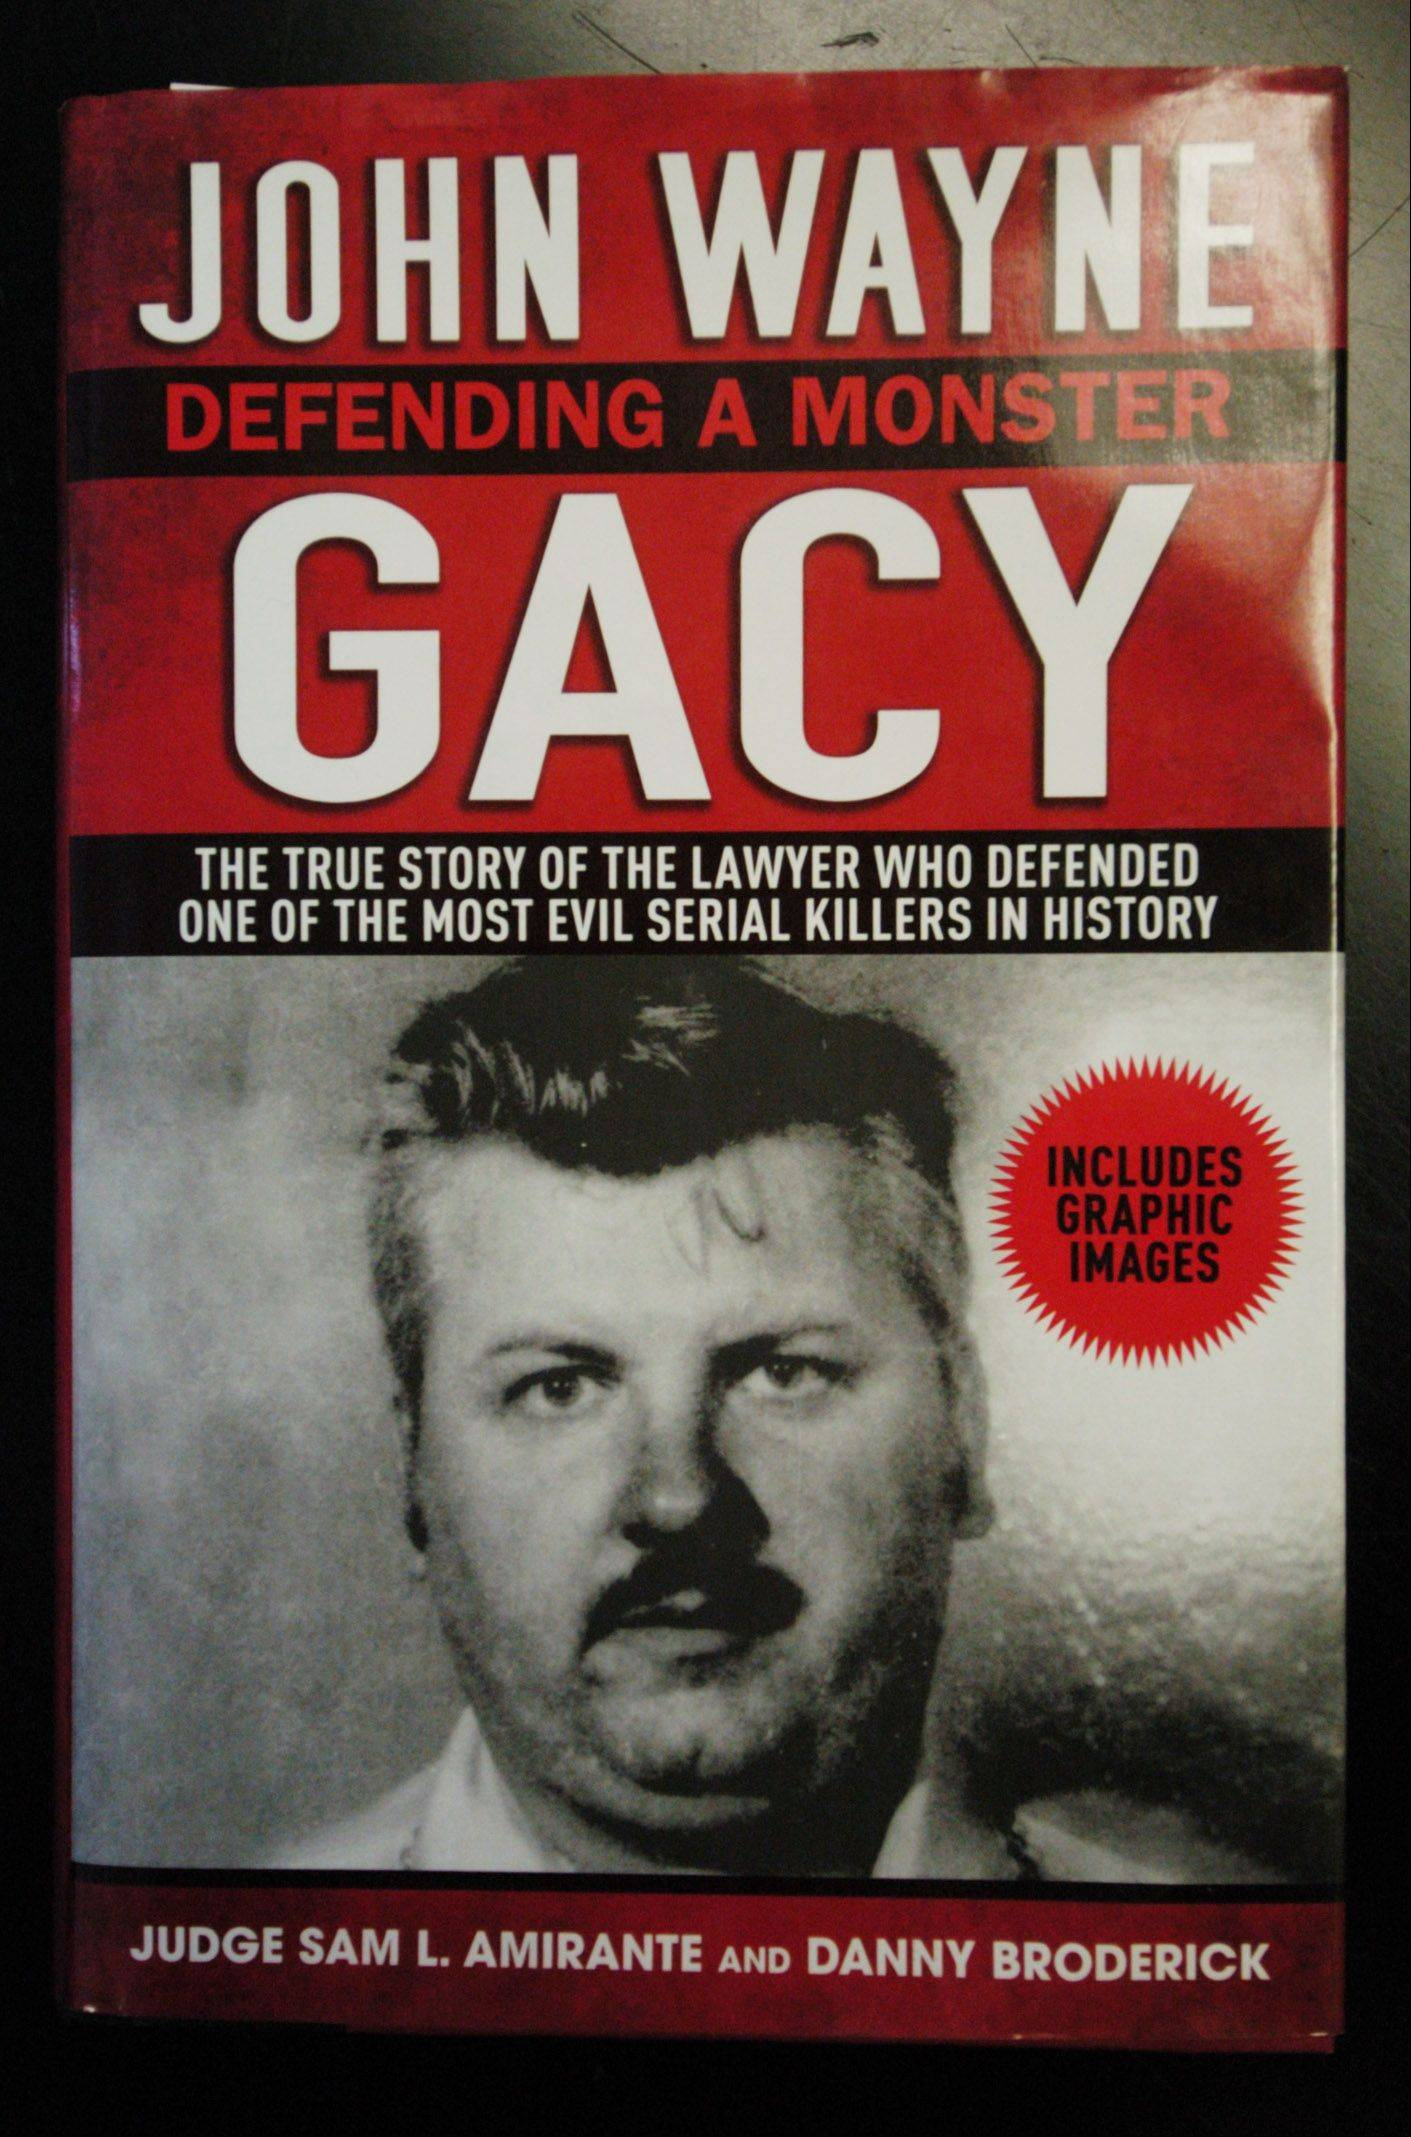 john wayne gacy essay John wayne gacy junior was no ordinary man he was born in chicago, illinois he was the second of three children (amirante) he was married twice during his lifetime and divorced both times.